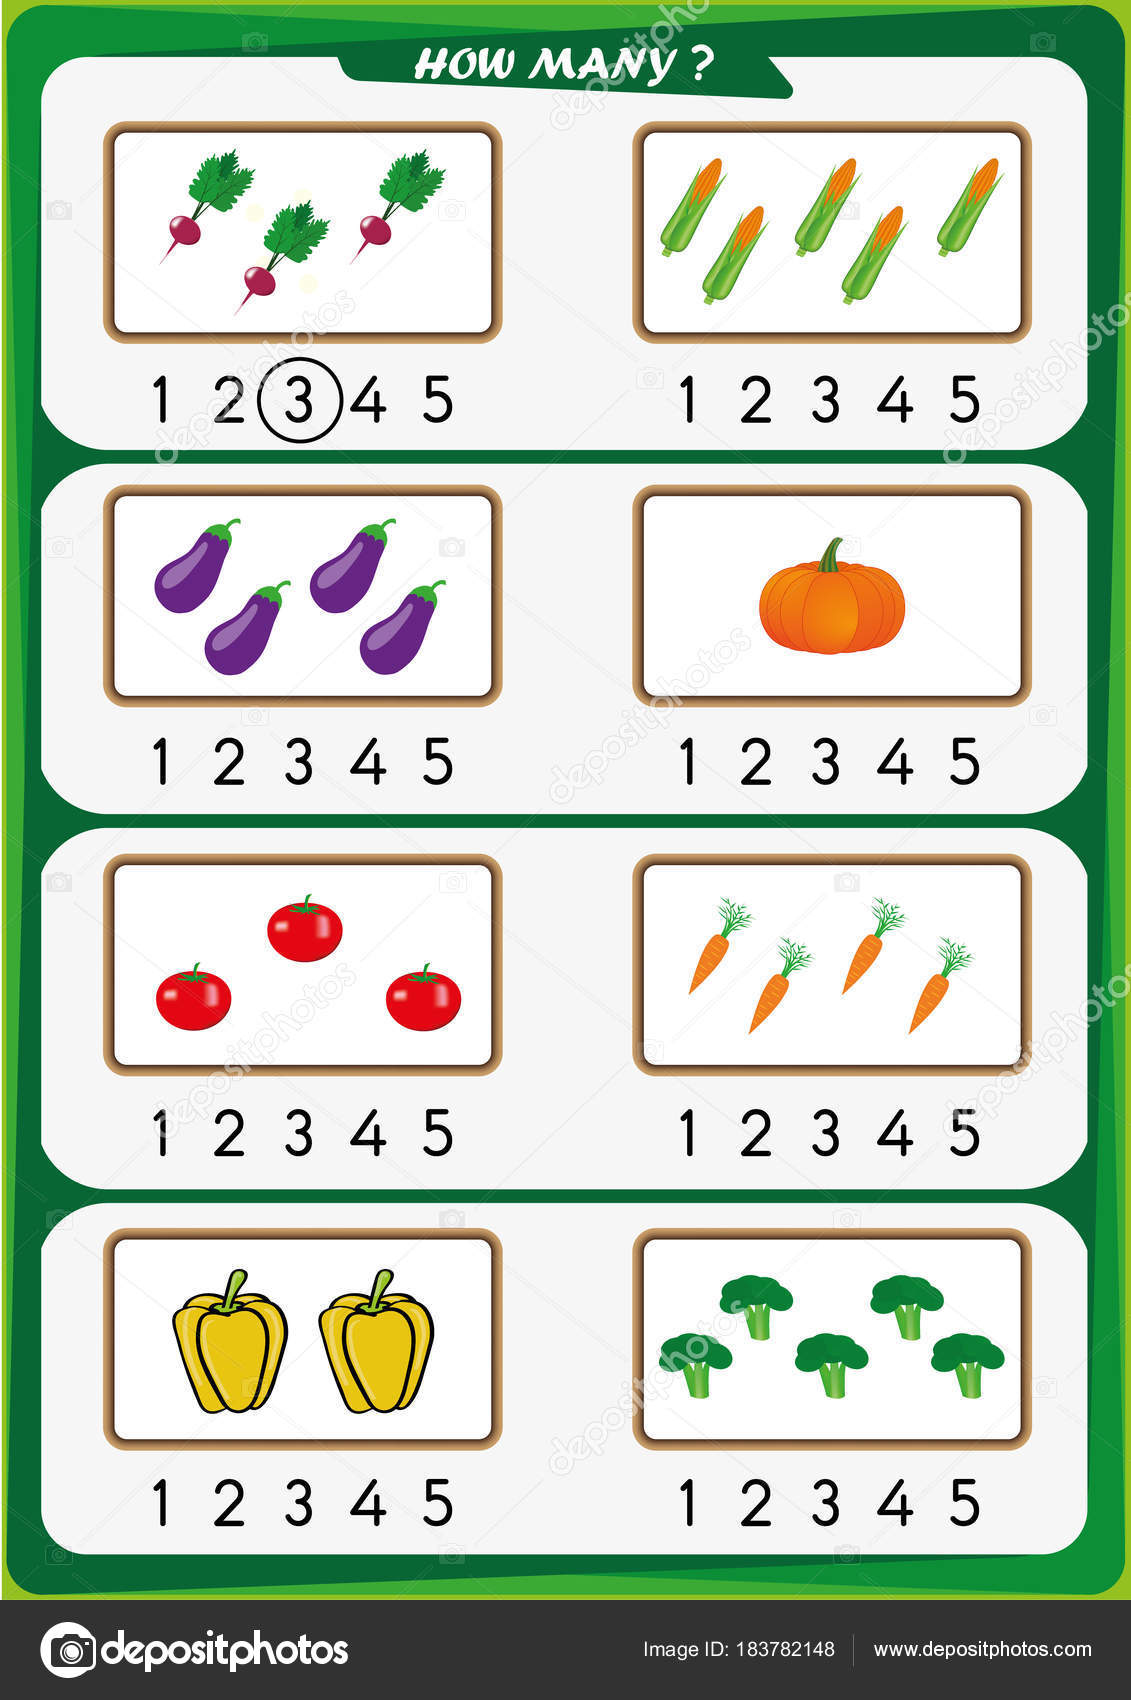 Worksheet For Kindergarten Kids Count The Number Of Objects Learn The Numbers 1 2 3 4 5